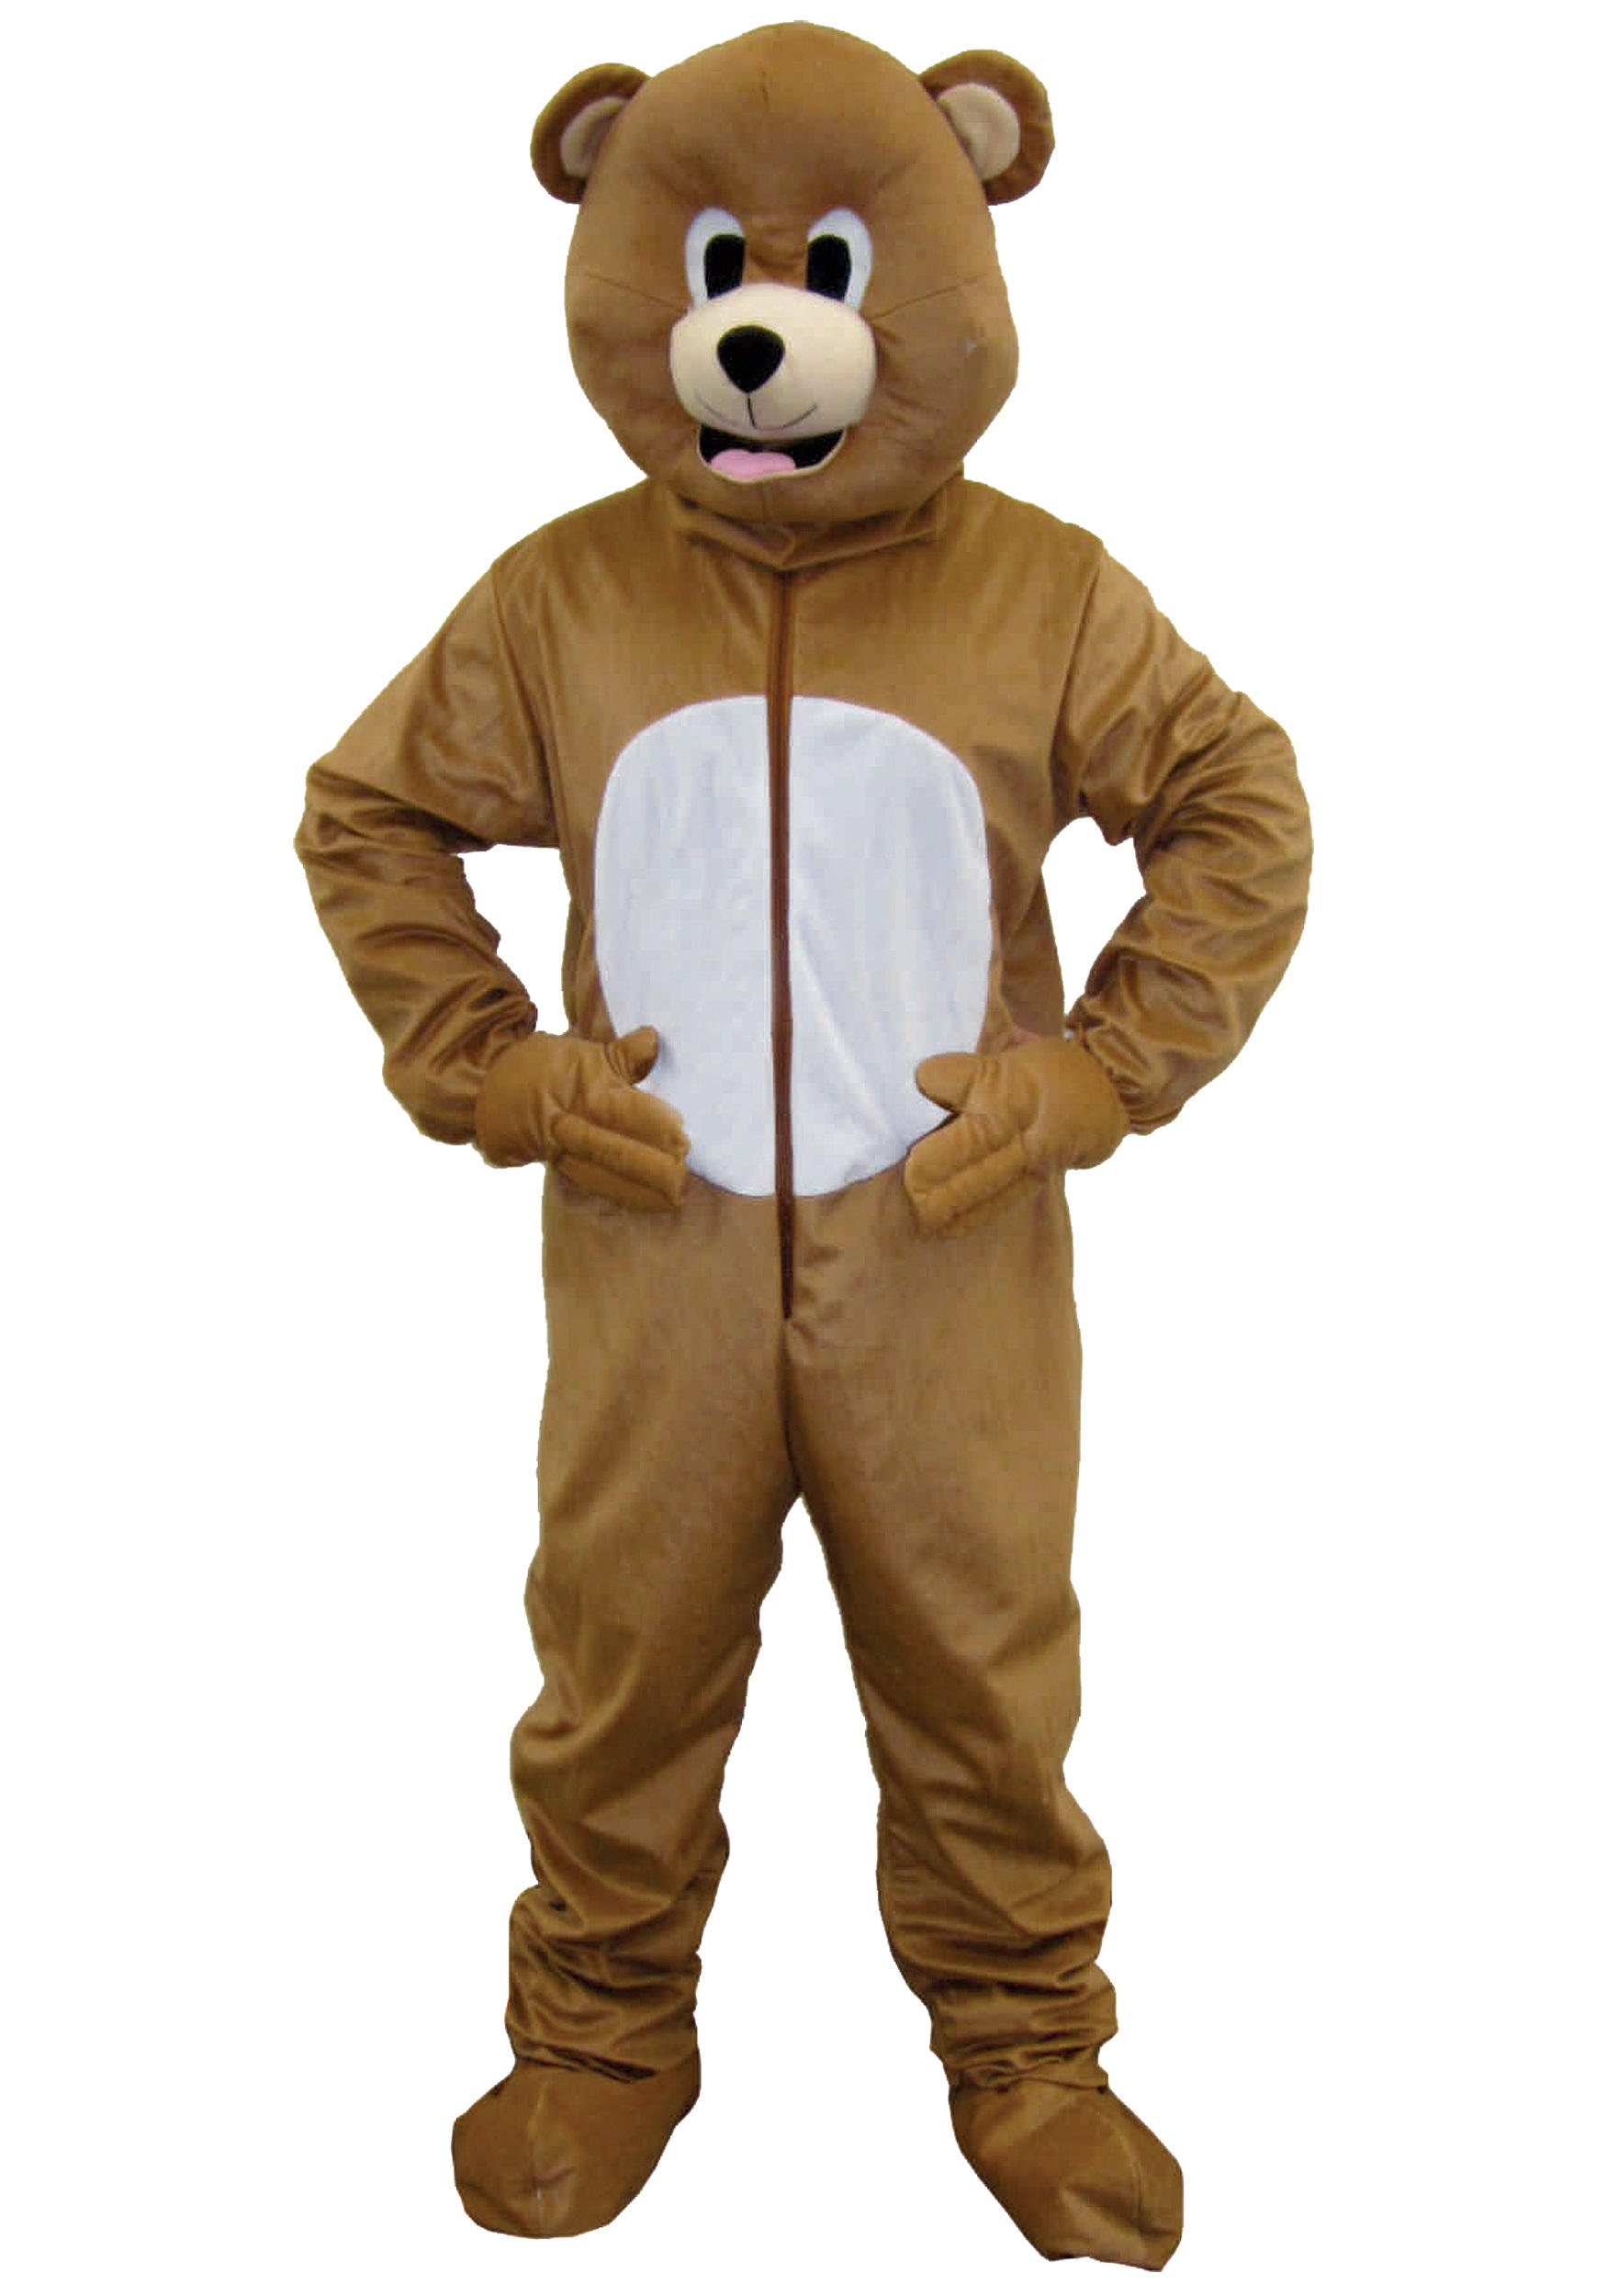 Brown Bear Mascot Costume  sc 1 st  Halloween Costumes & Mascot Costumes - Cheap Mascot Halloween Costume